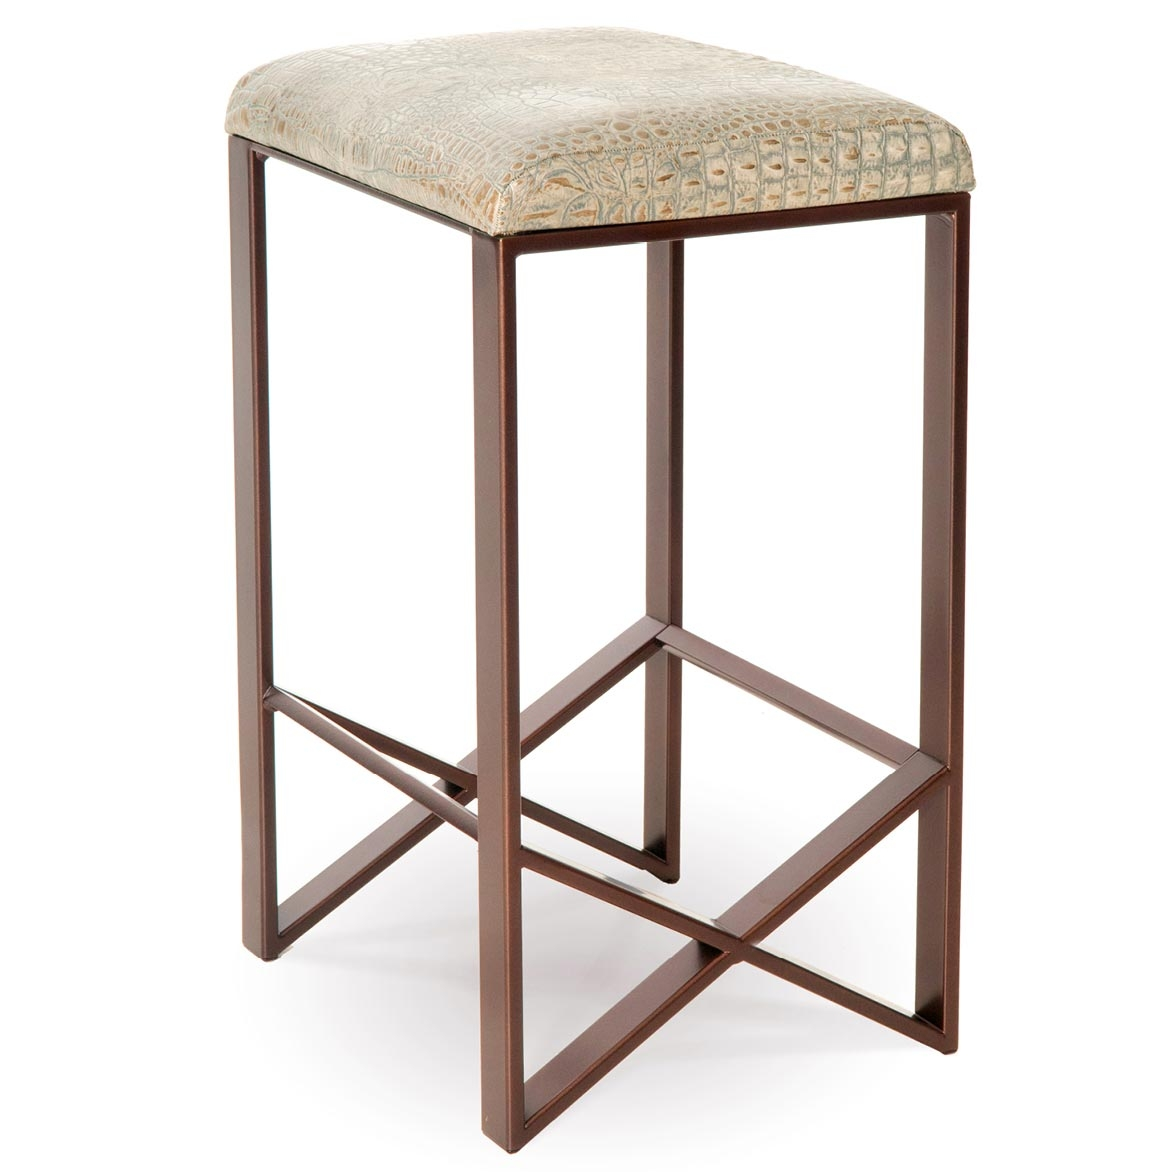 Pictured here is the victoria backless counter stool